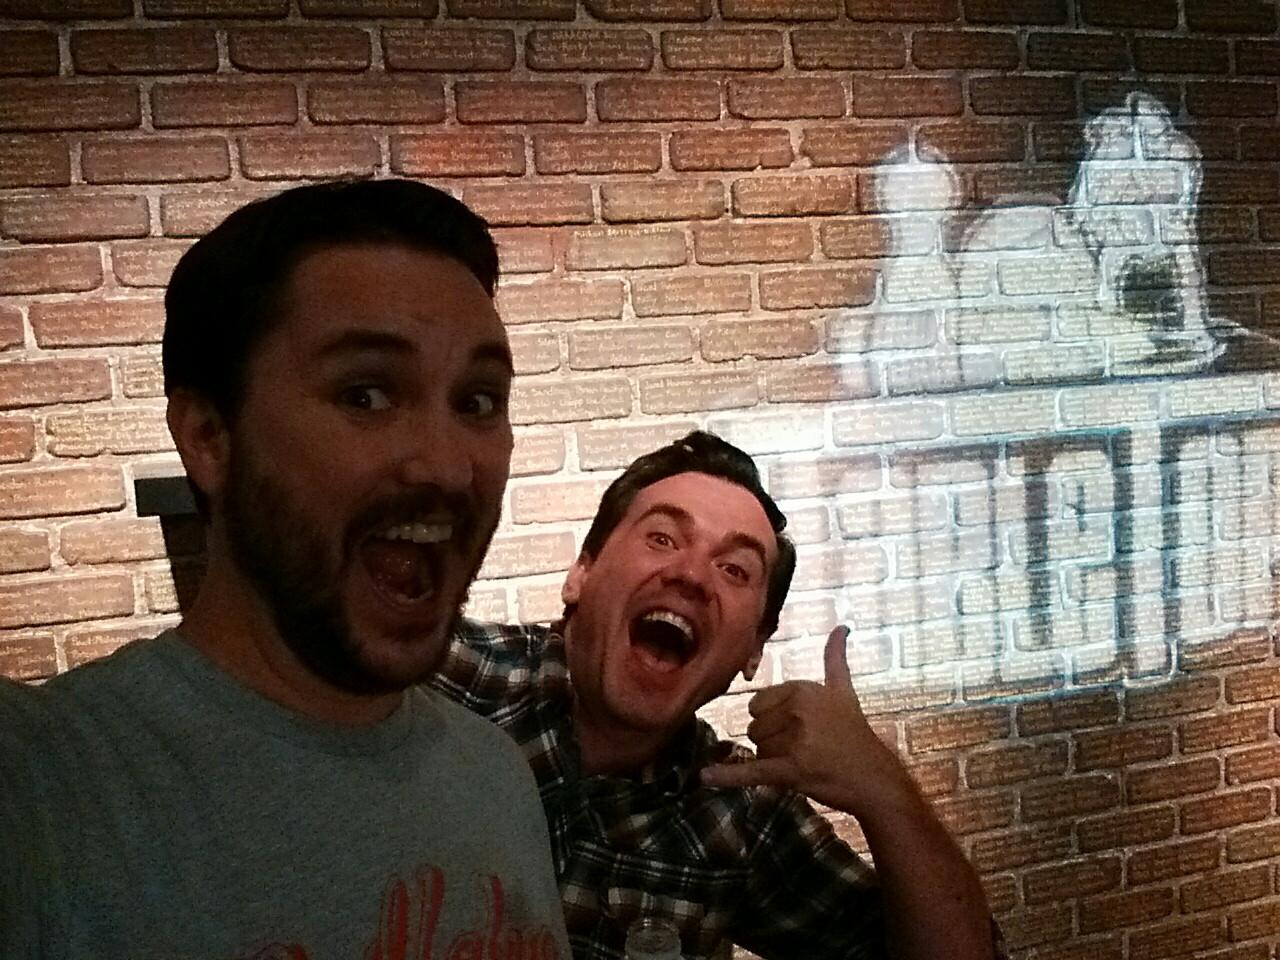 This is @thegamesmith. @tabletop would not exist without his work and help. http://t.co/AHkzU7yhTN